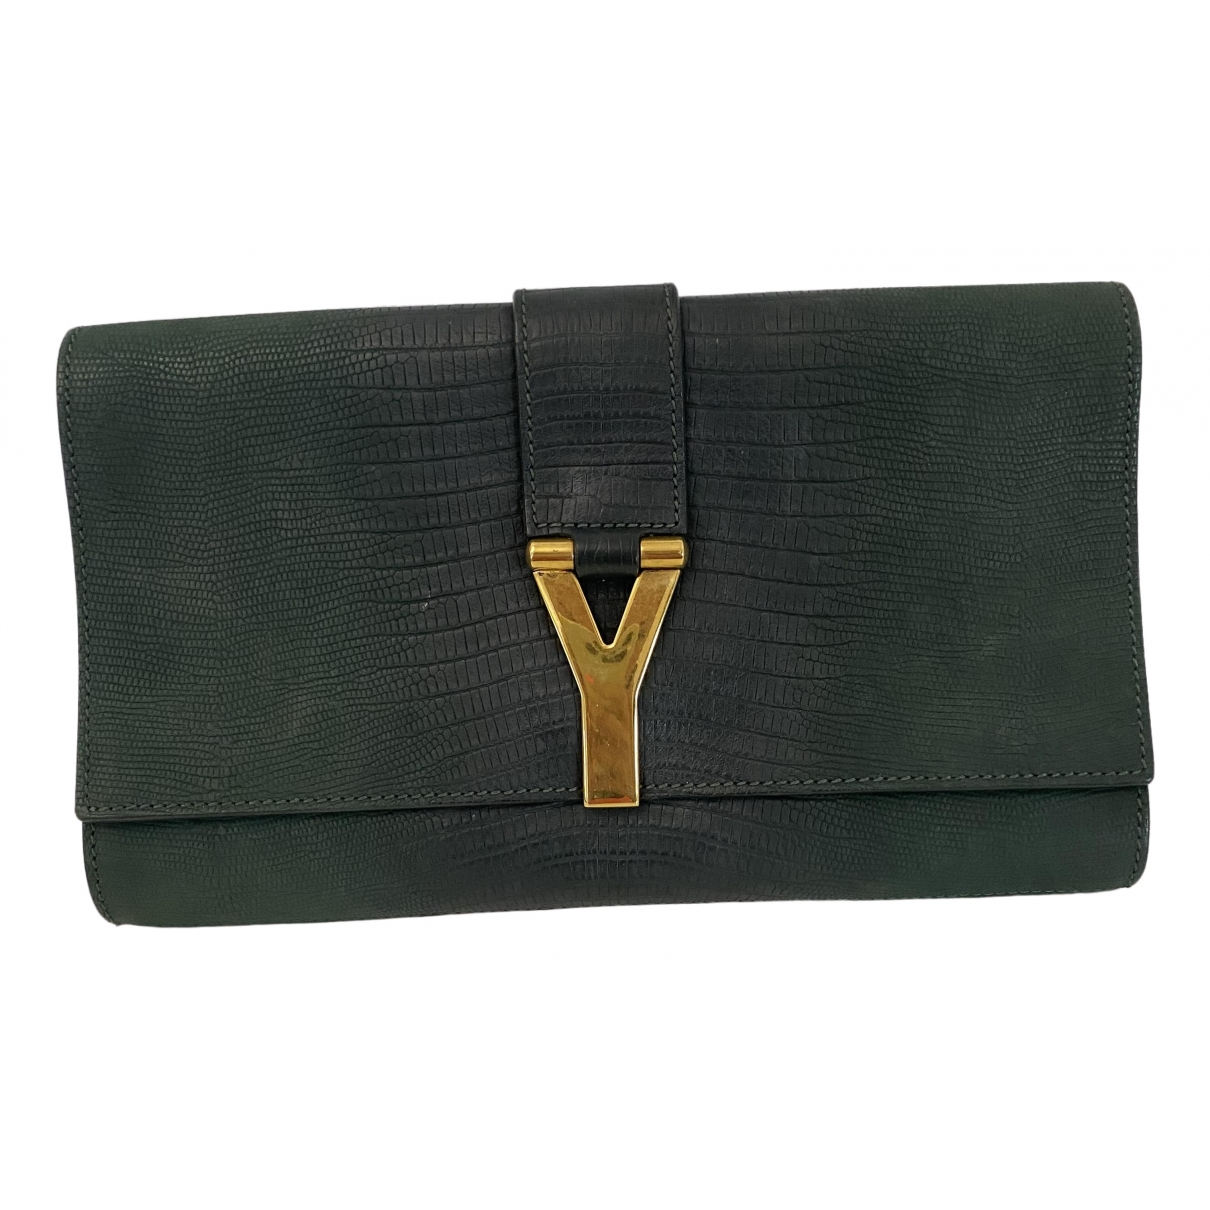 Yves Saint Laurent Chyc Green Suede Clutch bag for Women \N